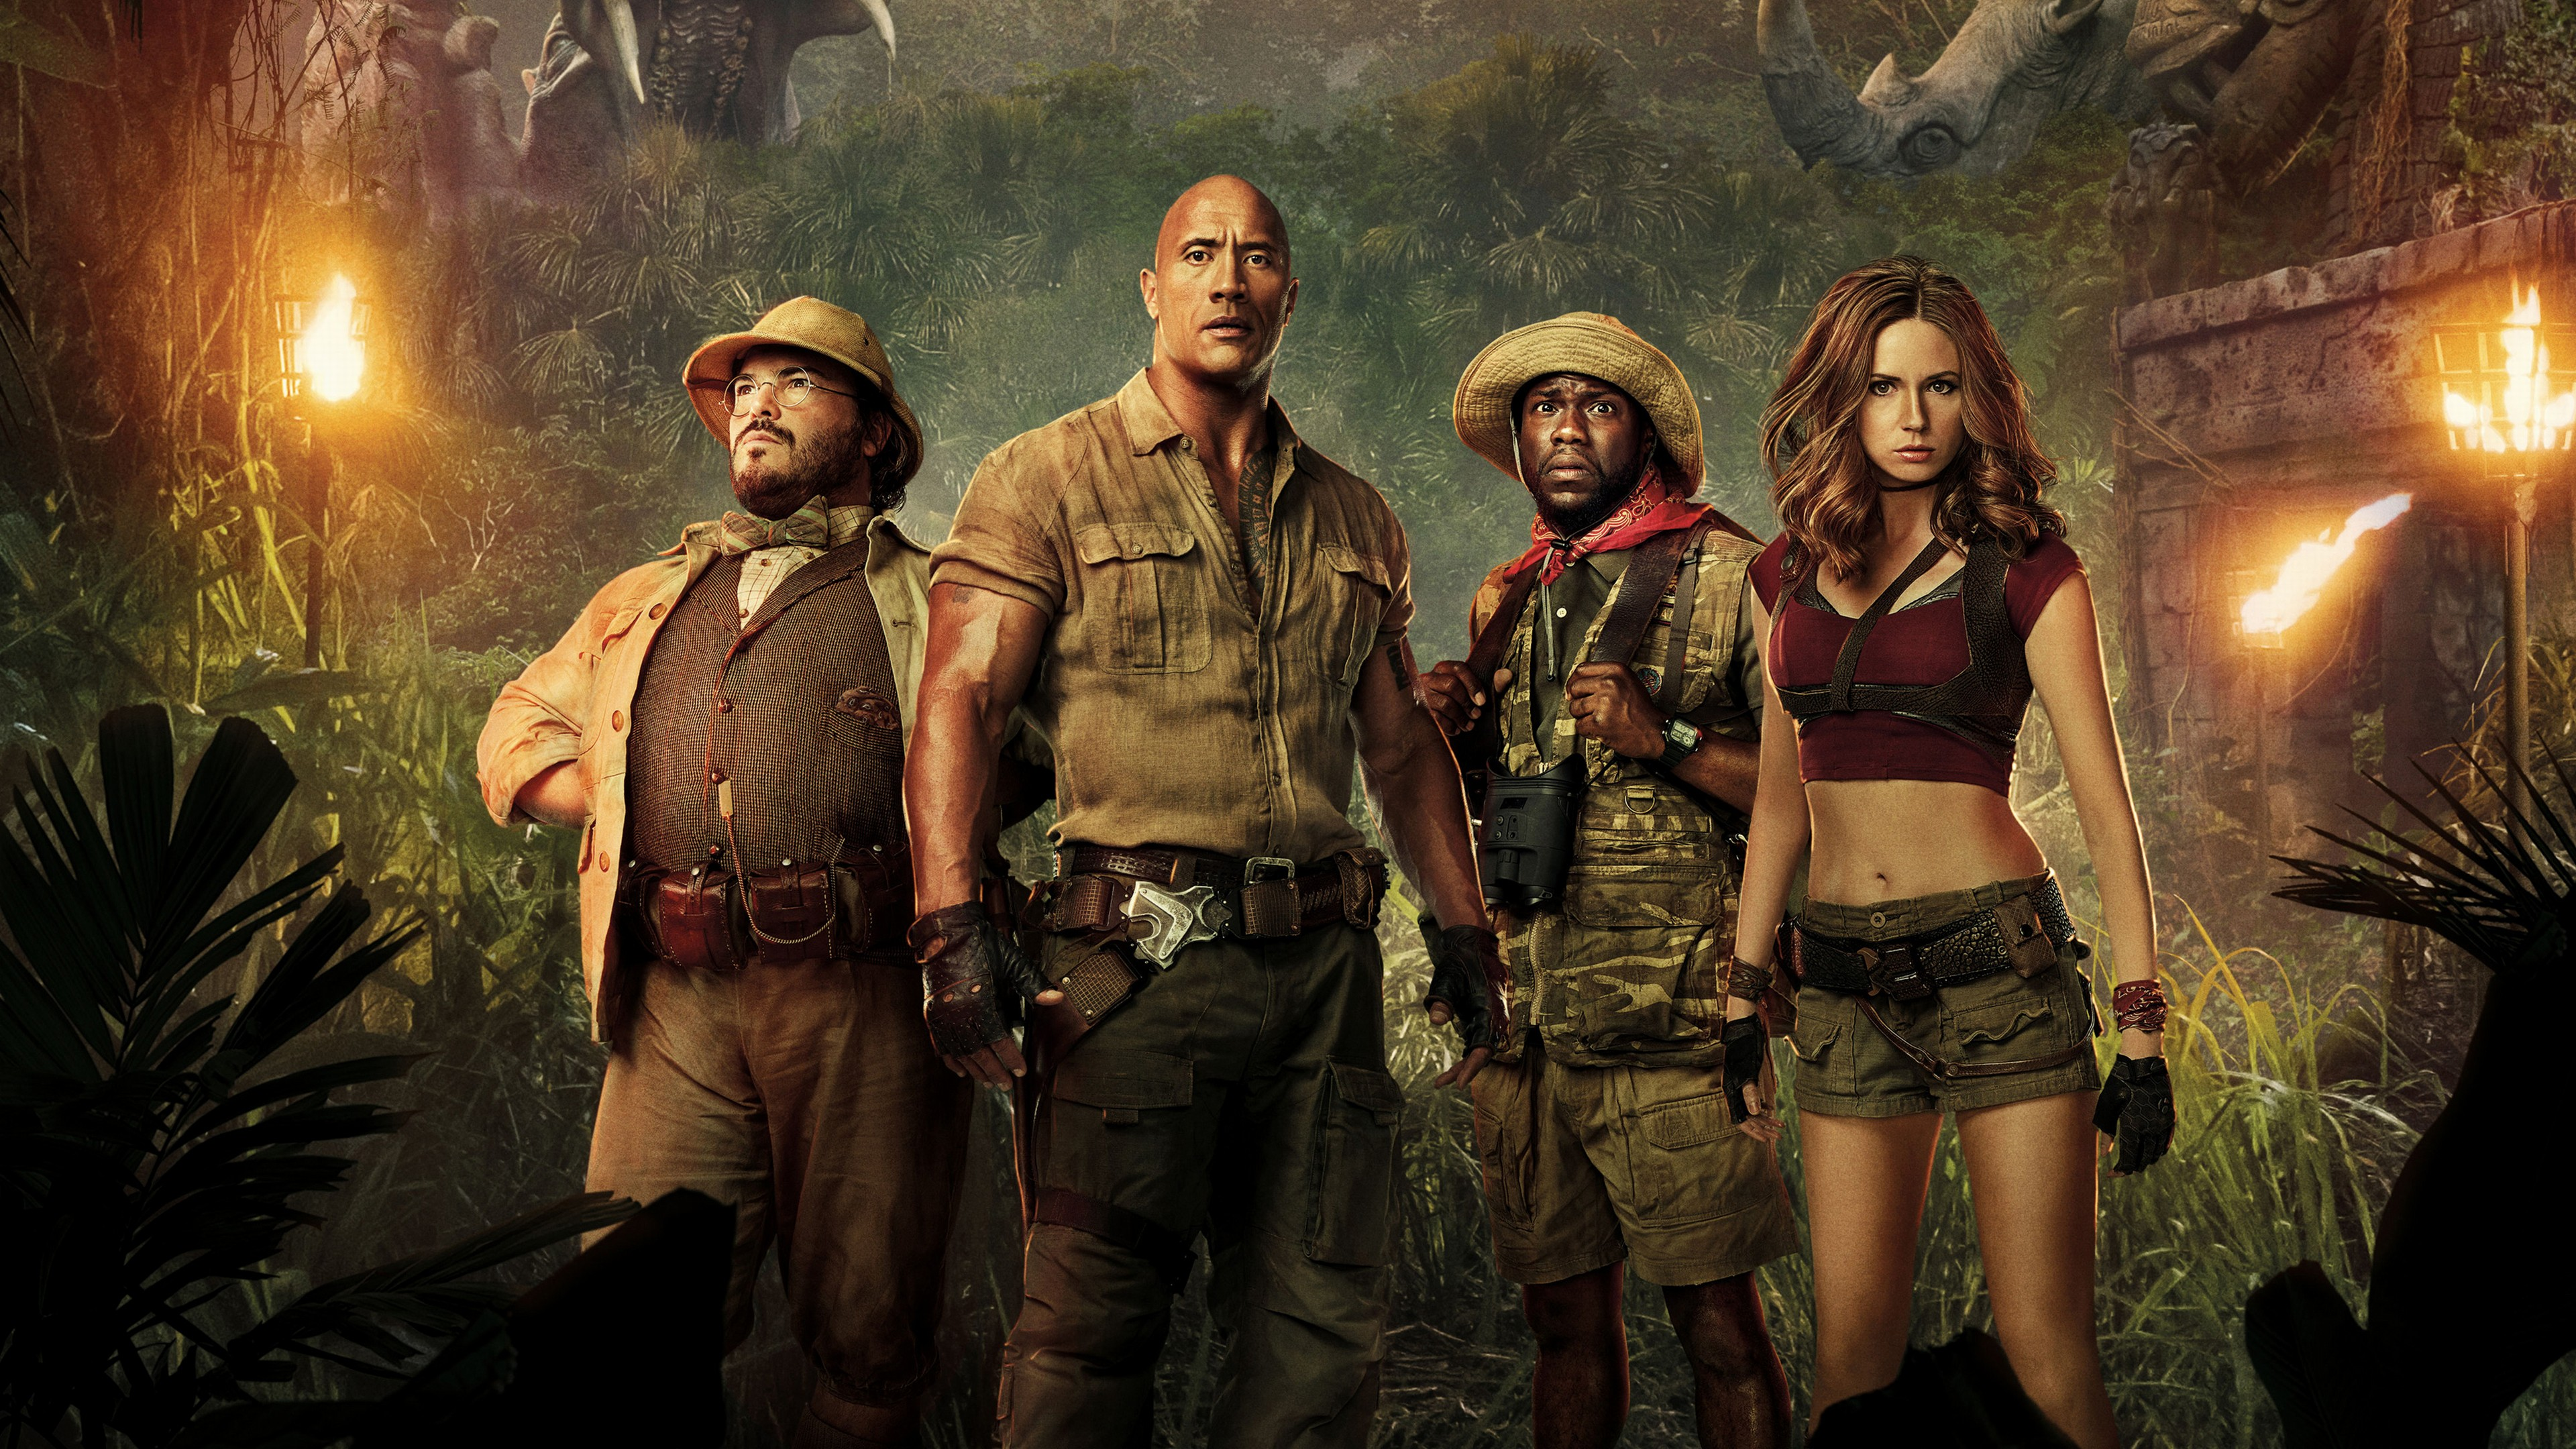 Jumanji Welcome to the Jungle 4k Ultra HD Wallpaper Background 3840x2160